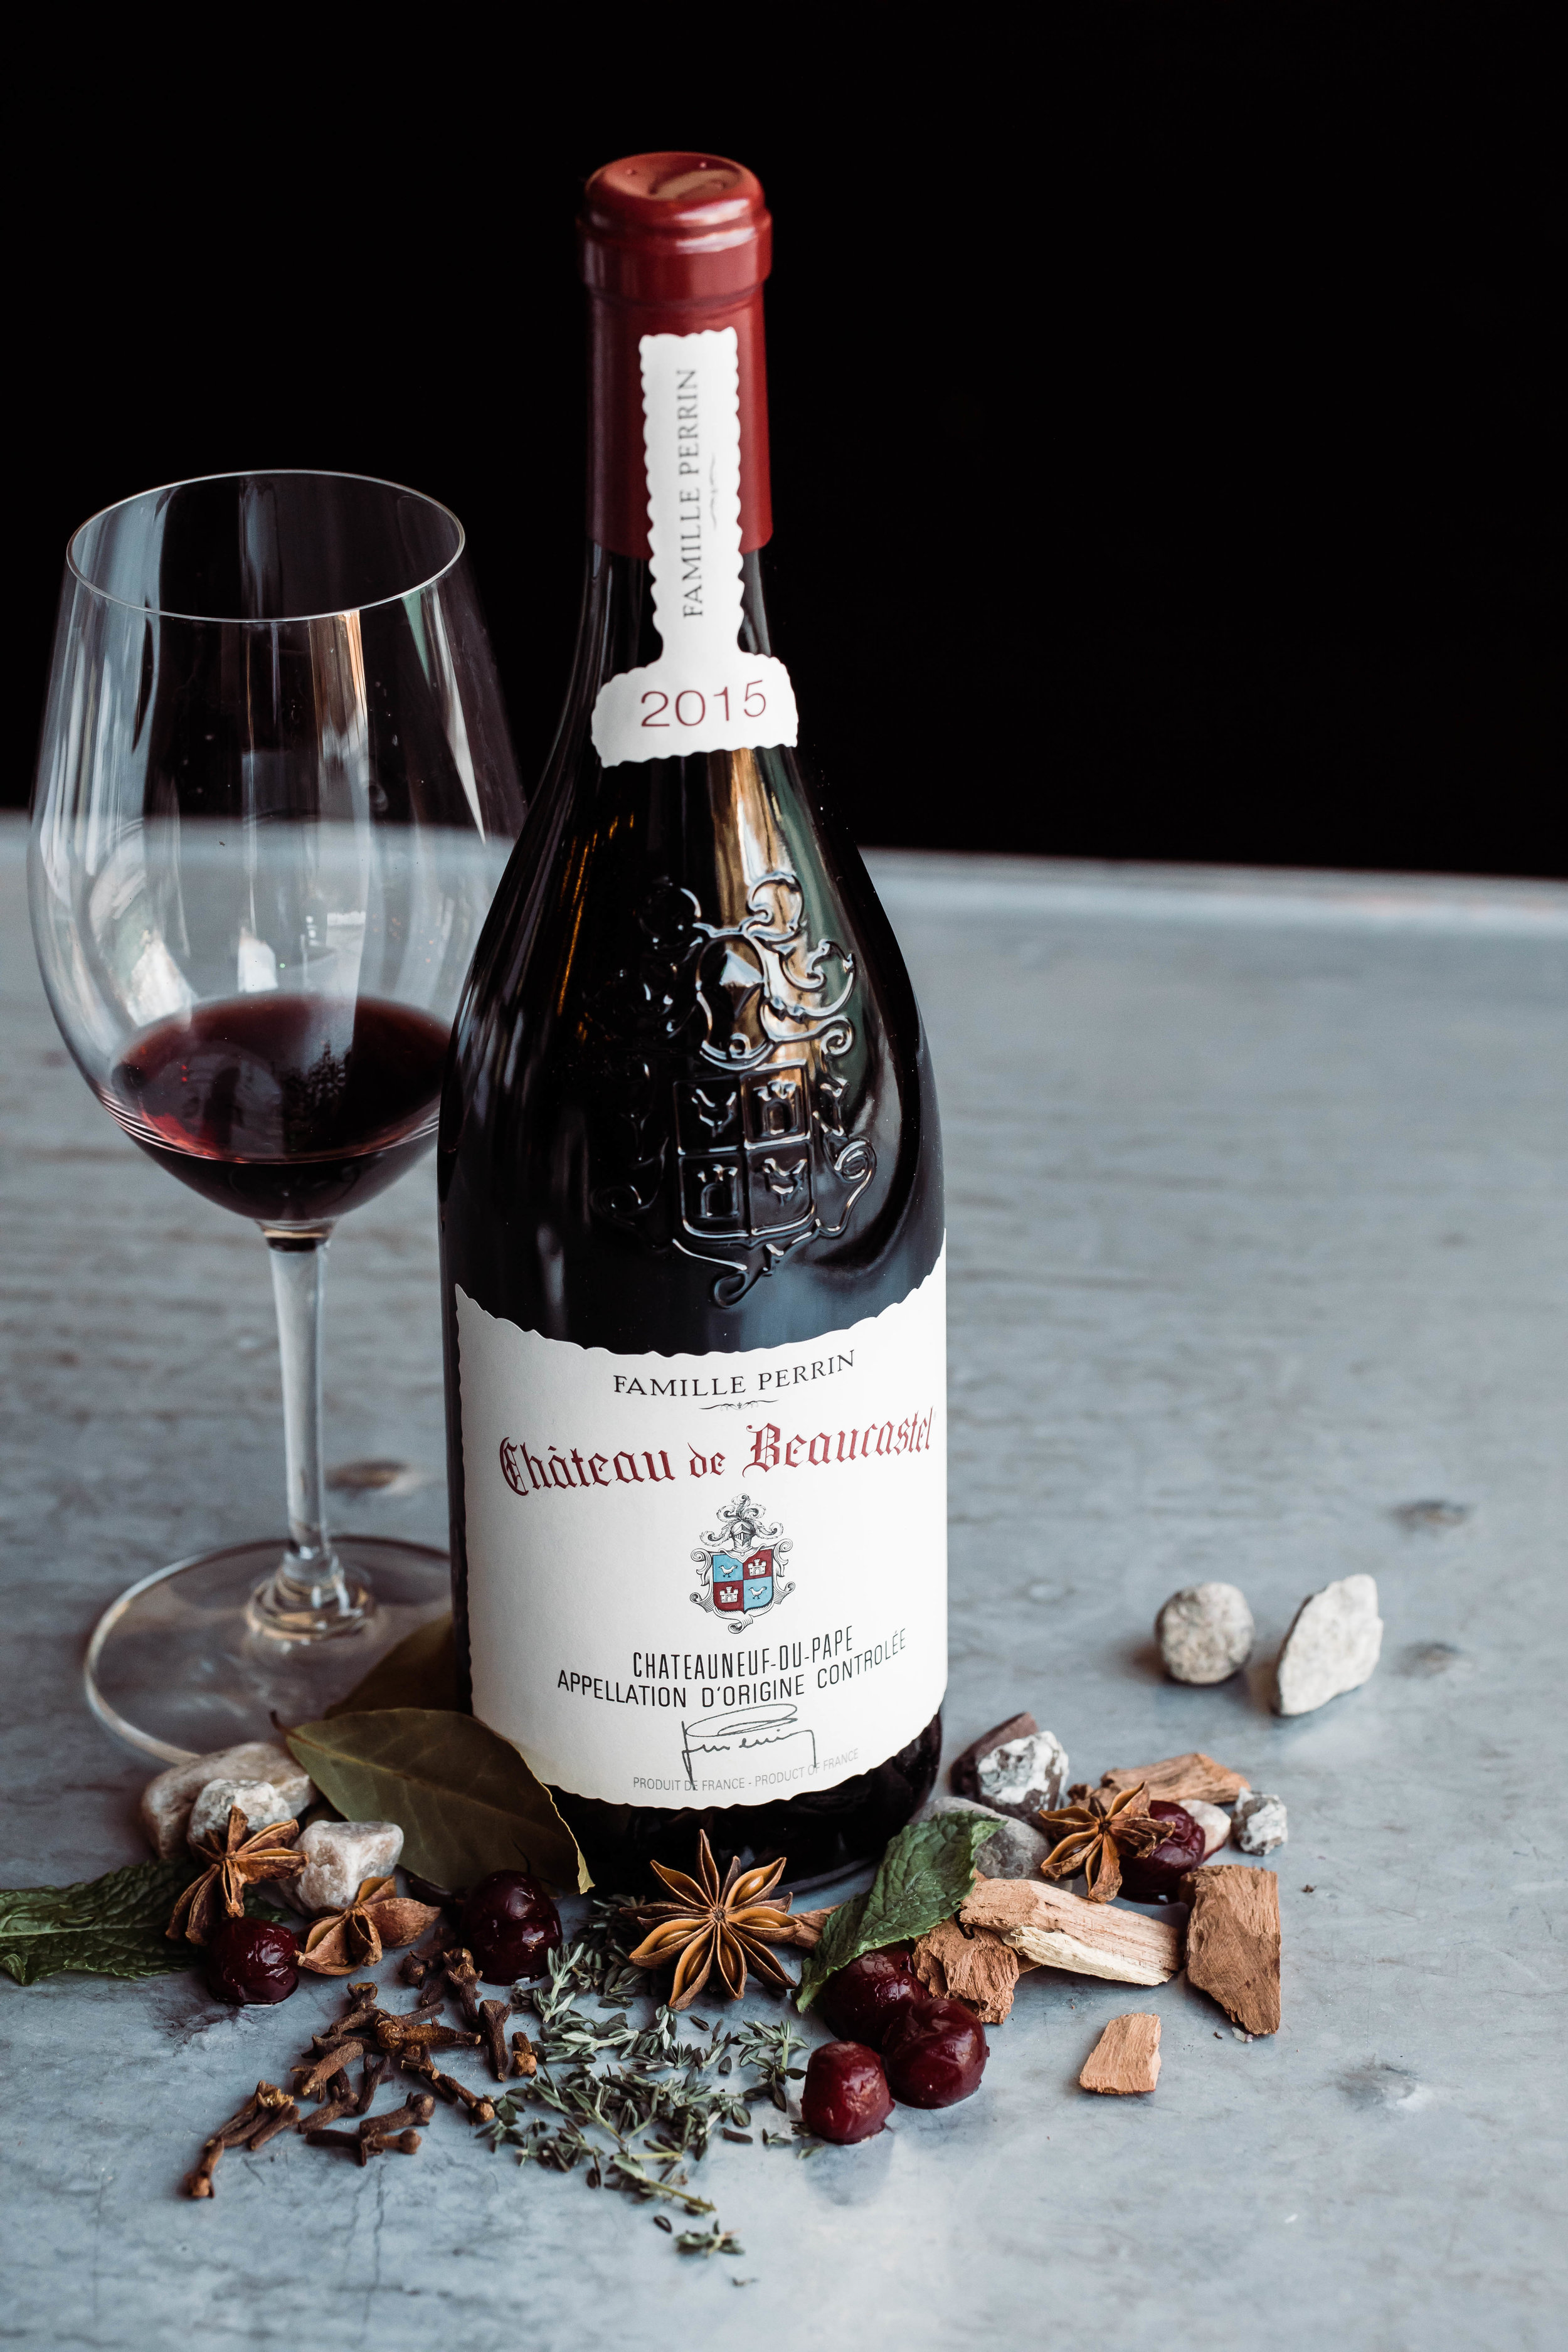 2015 Chateau de Beaucastel Chateauneuf-du-Pape Notes of dark cherries, clove, herbs, star anise, earthy, oak